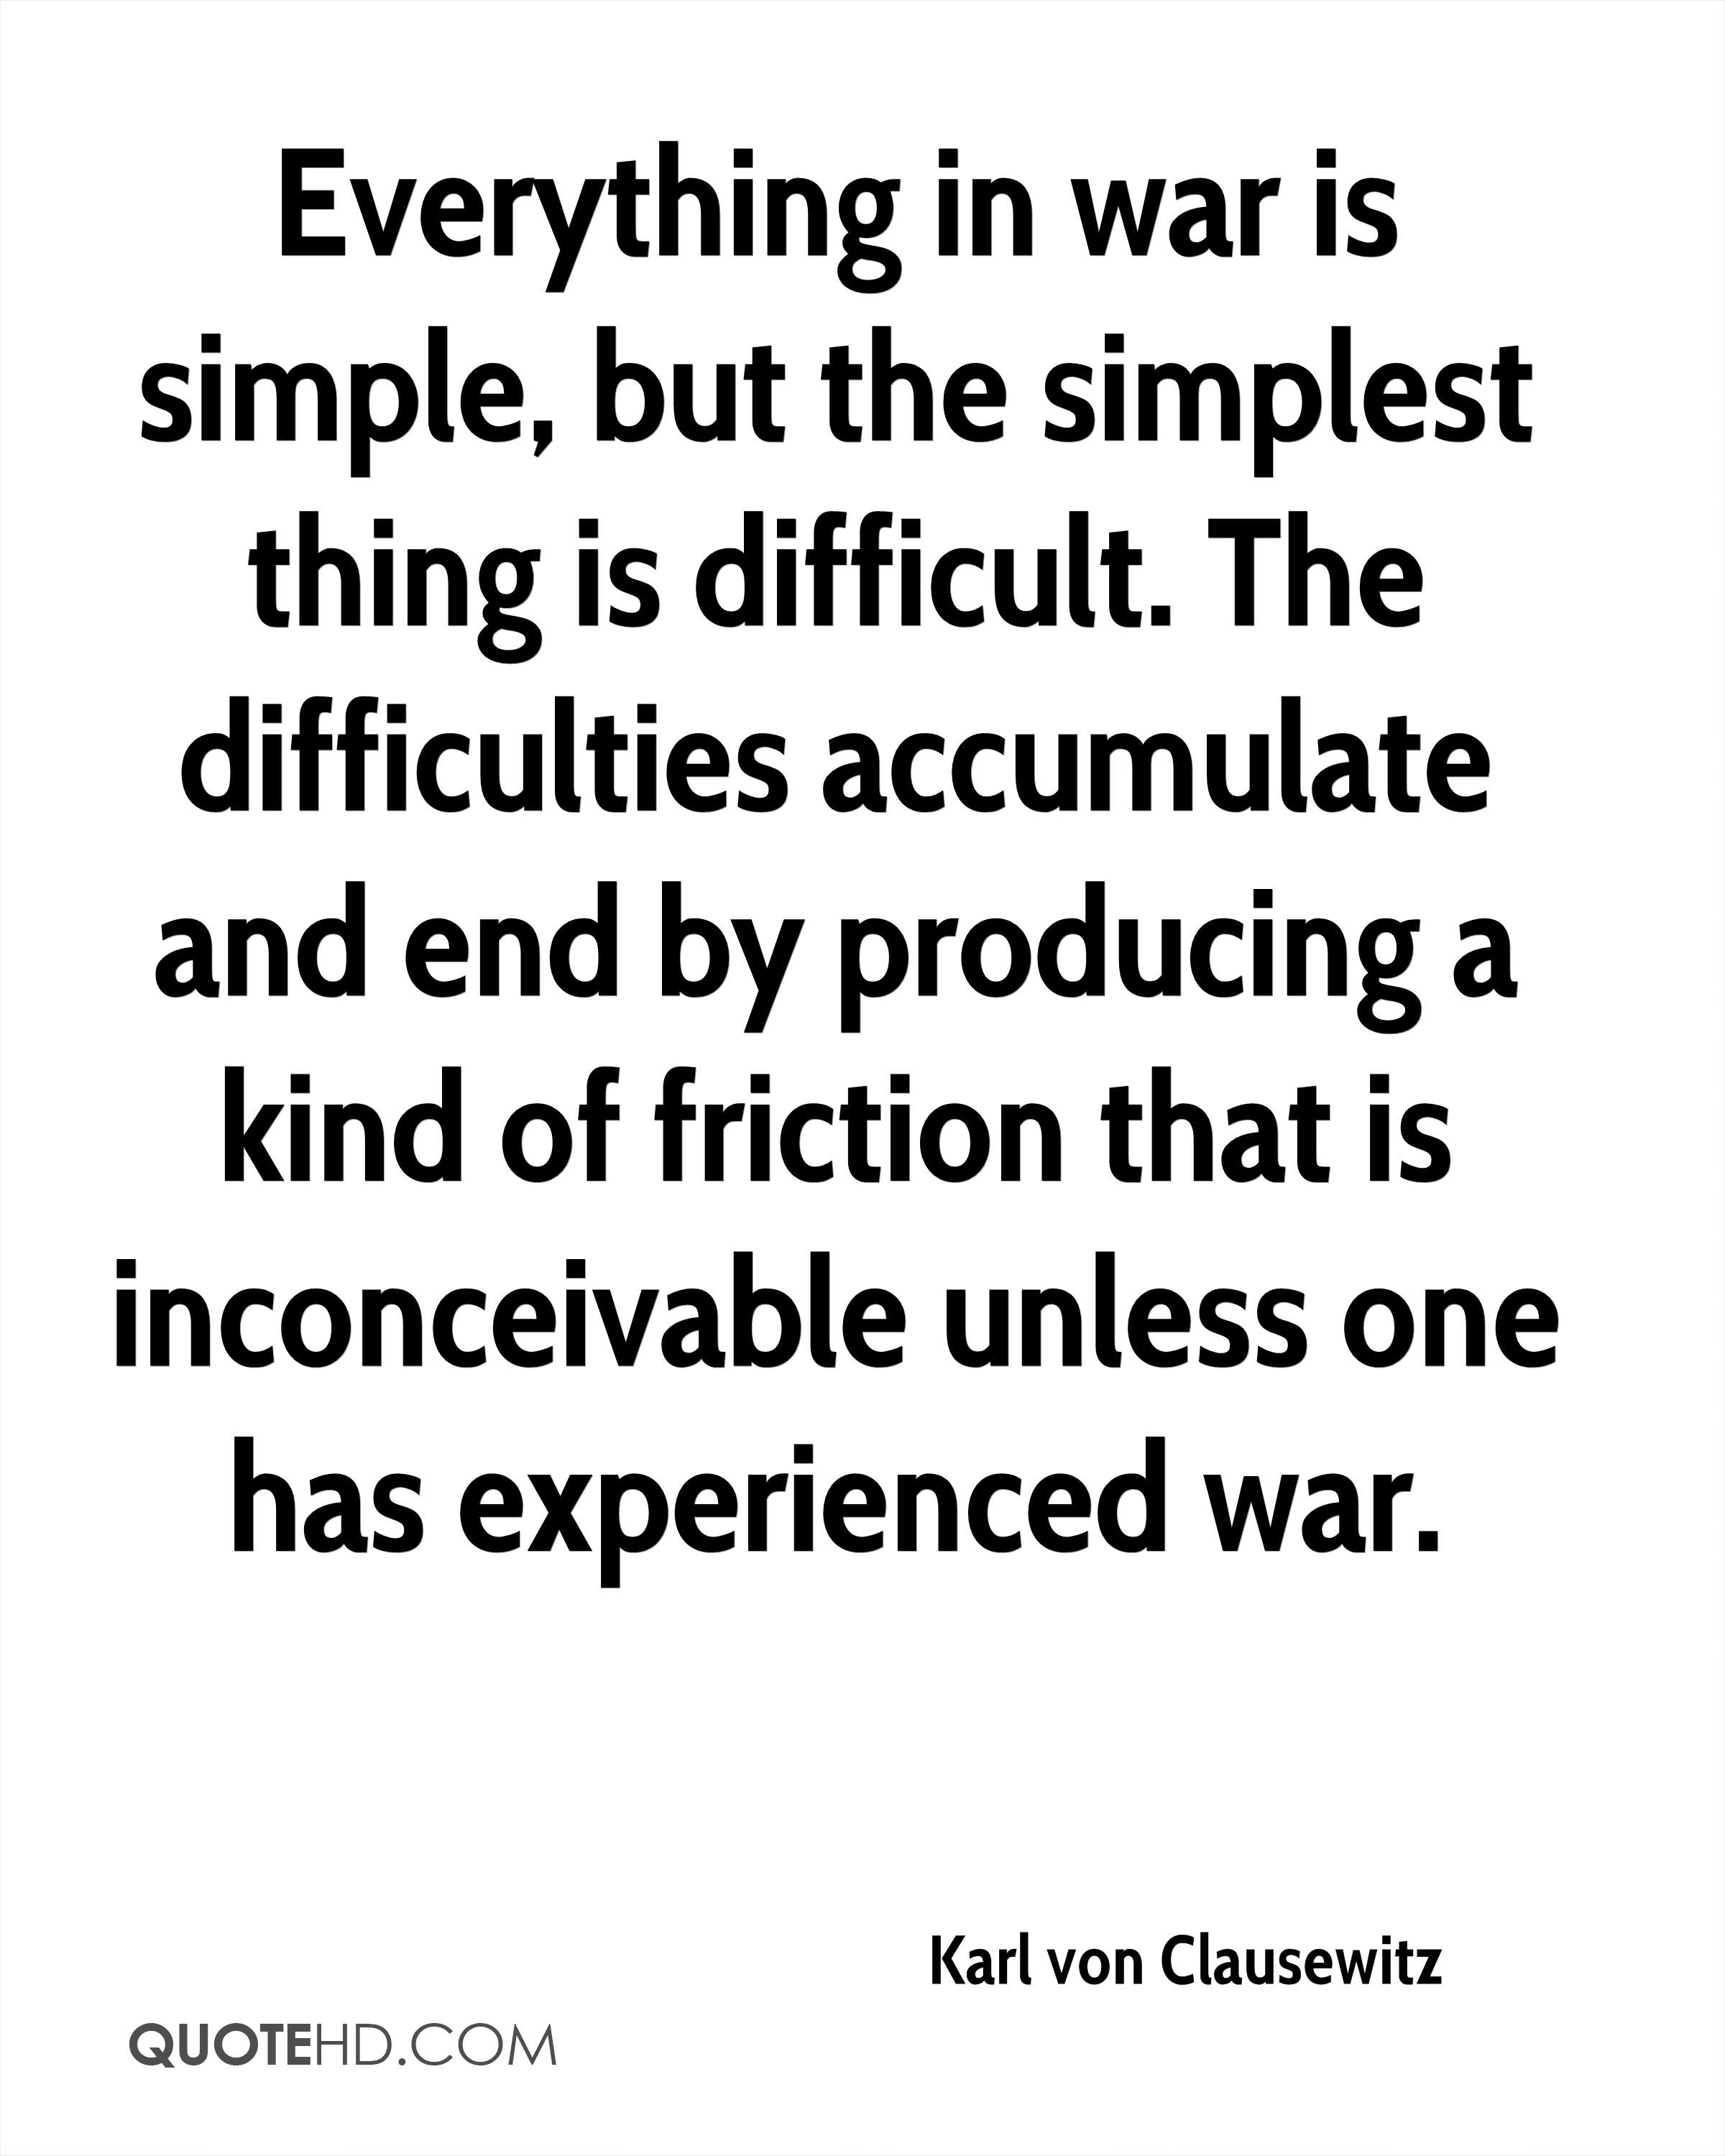 Everything in war is simple, but the simplest thing is difficult. The difficulties accumulate and end by producing a kind of friction that is inconceivable unless one has experienced war.